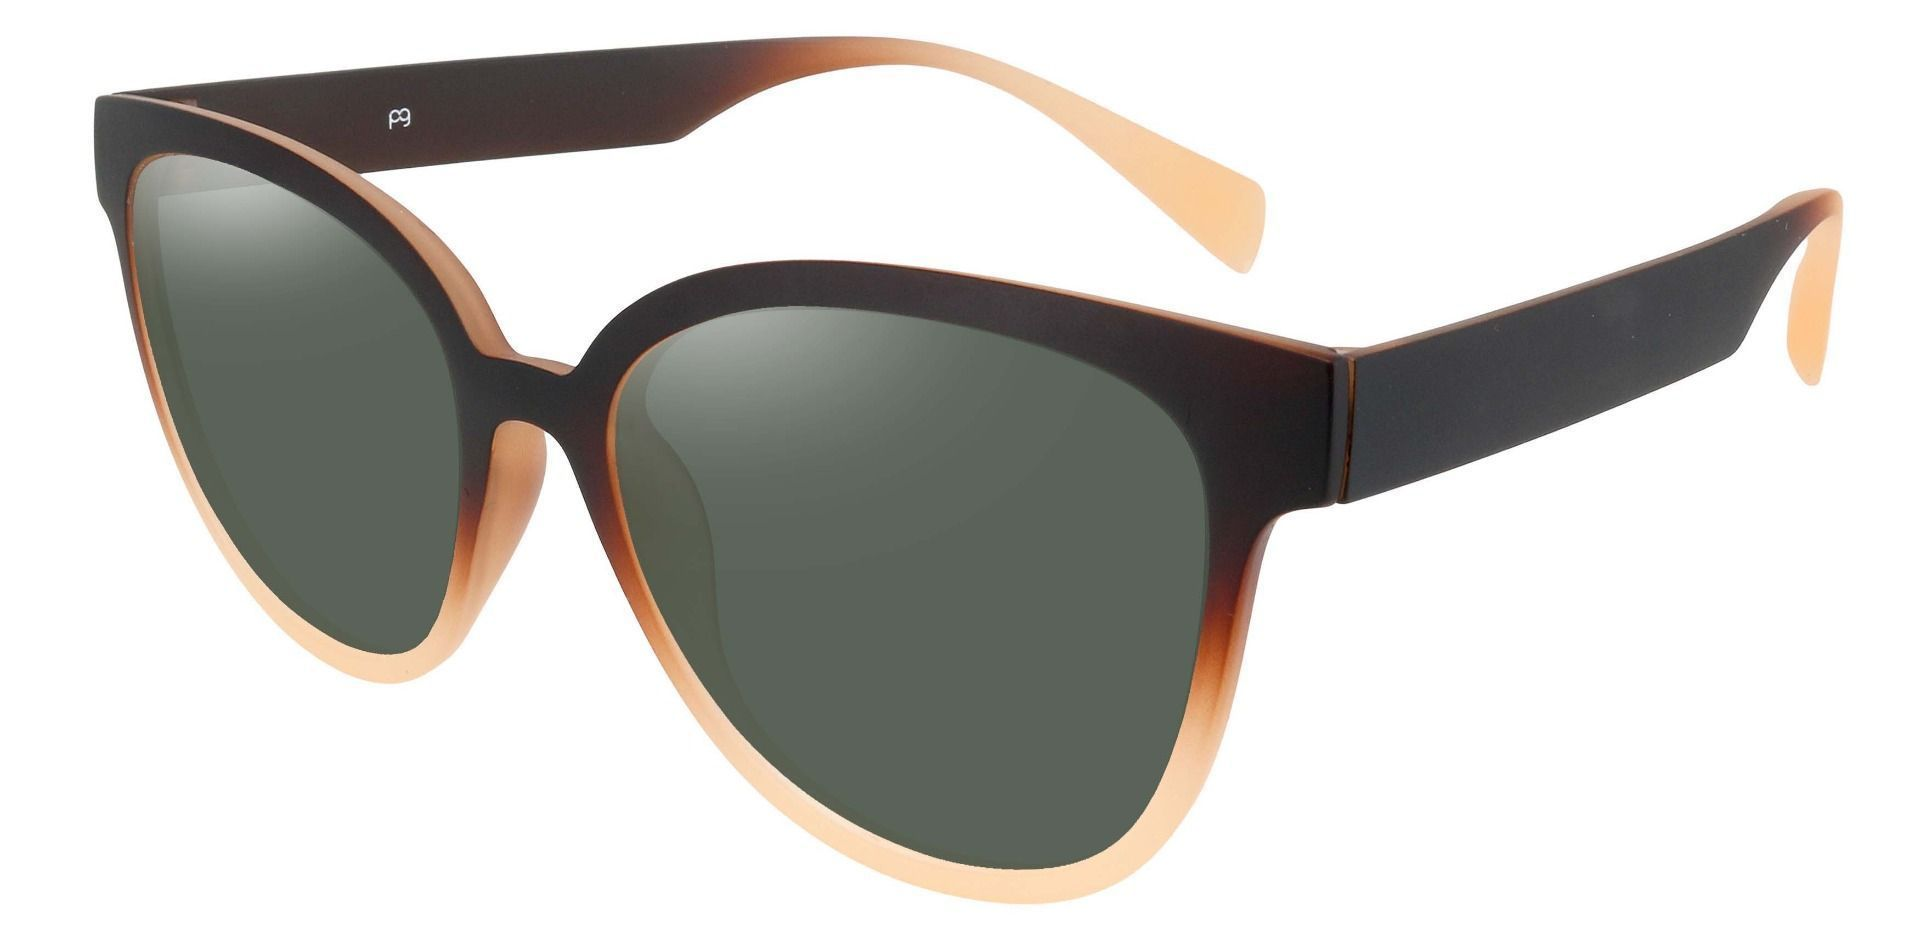 Newport Oval Non-Rx Sunglasses - Brown Frame With Green Lenses